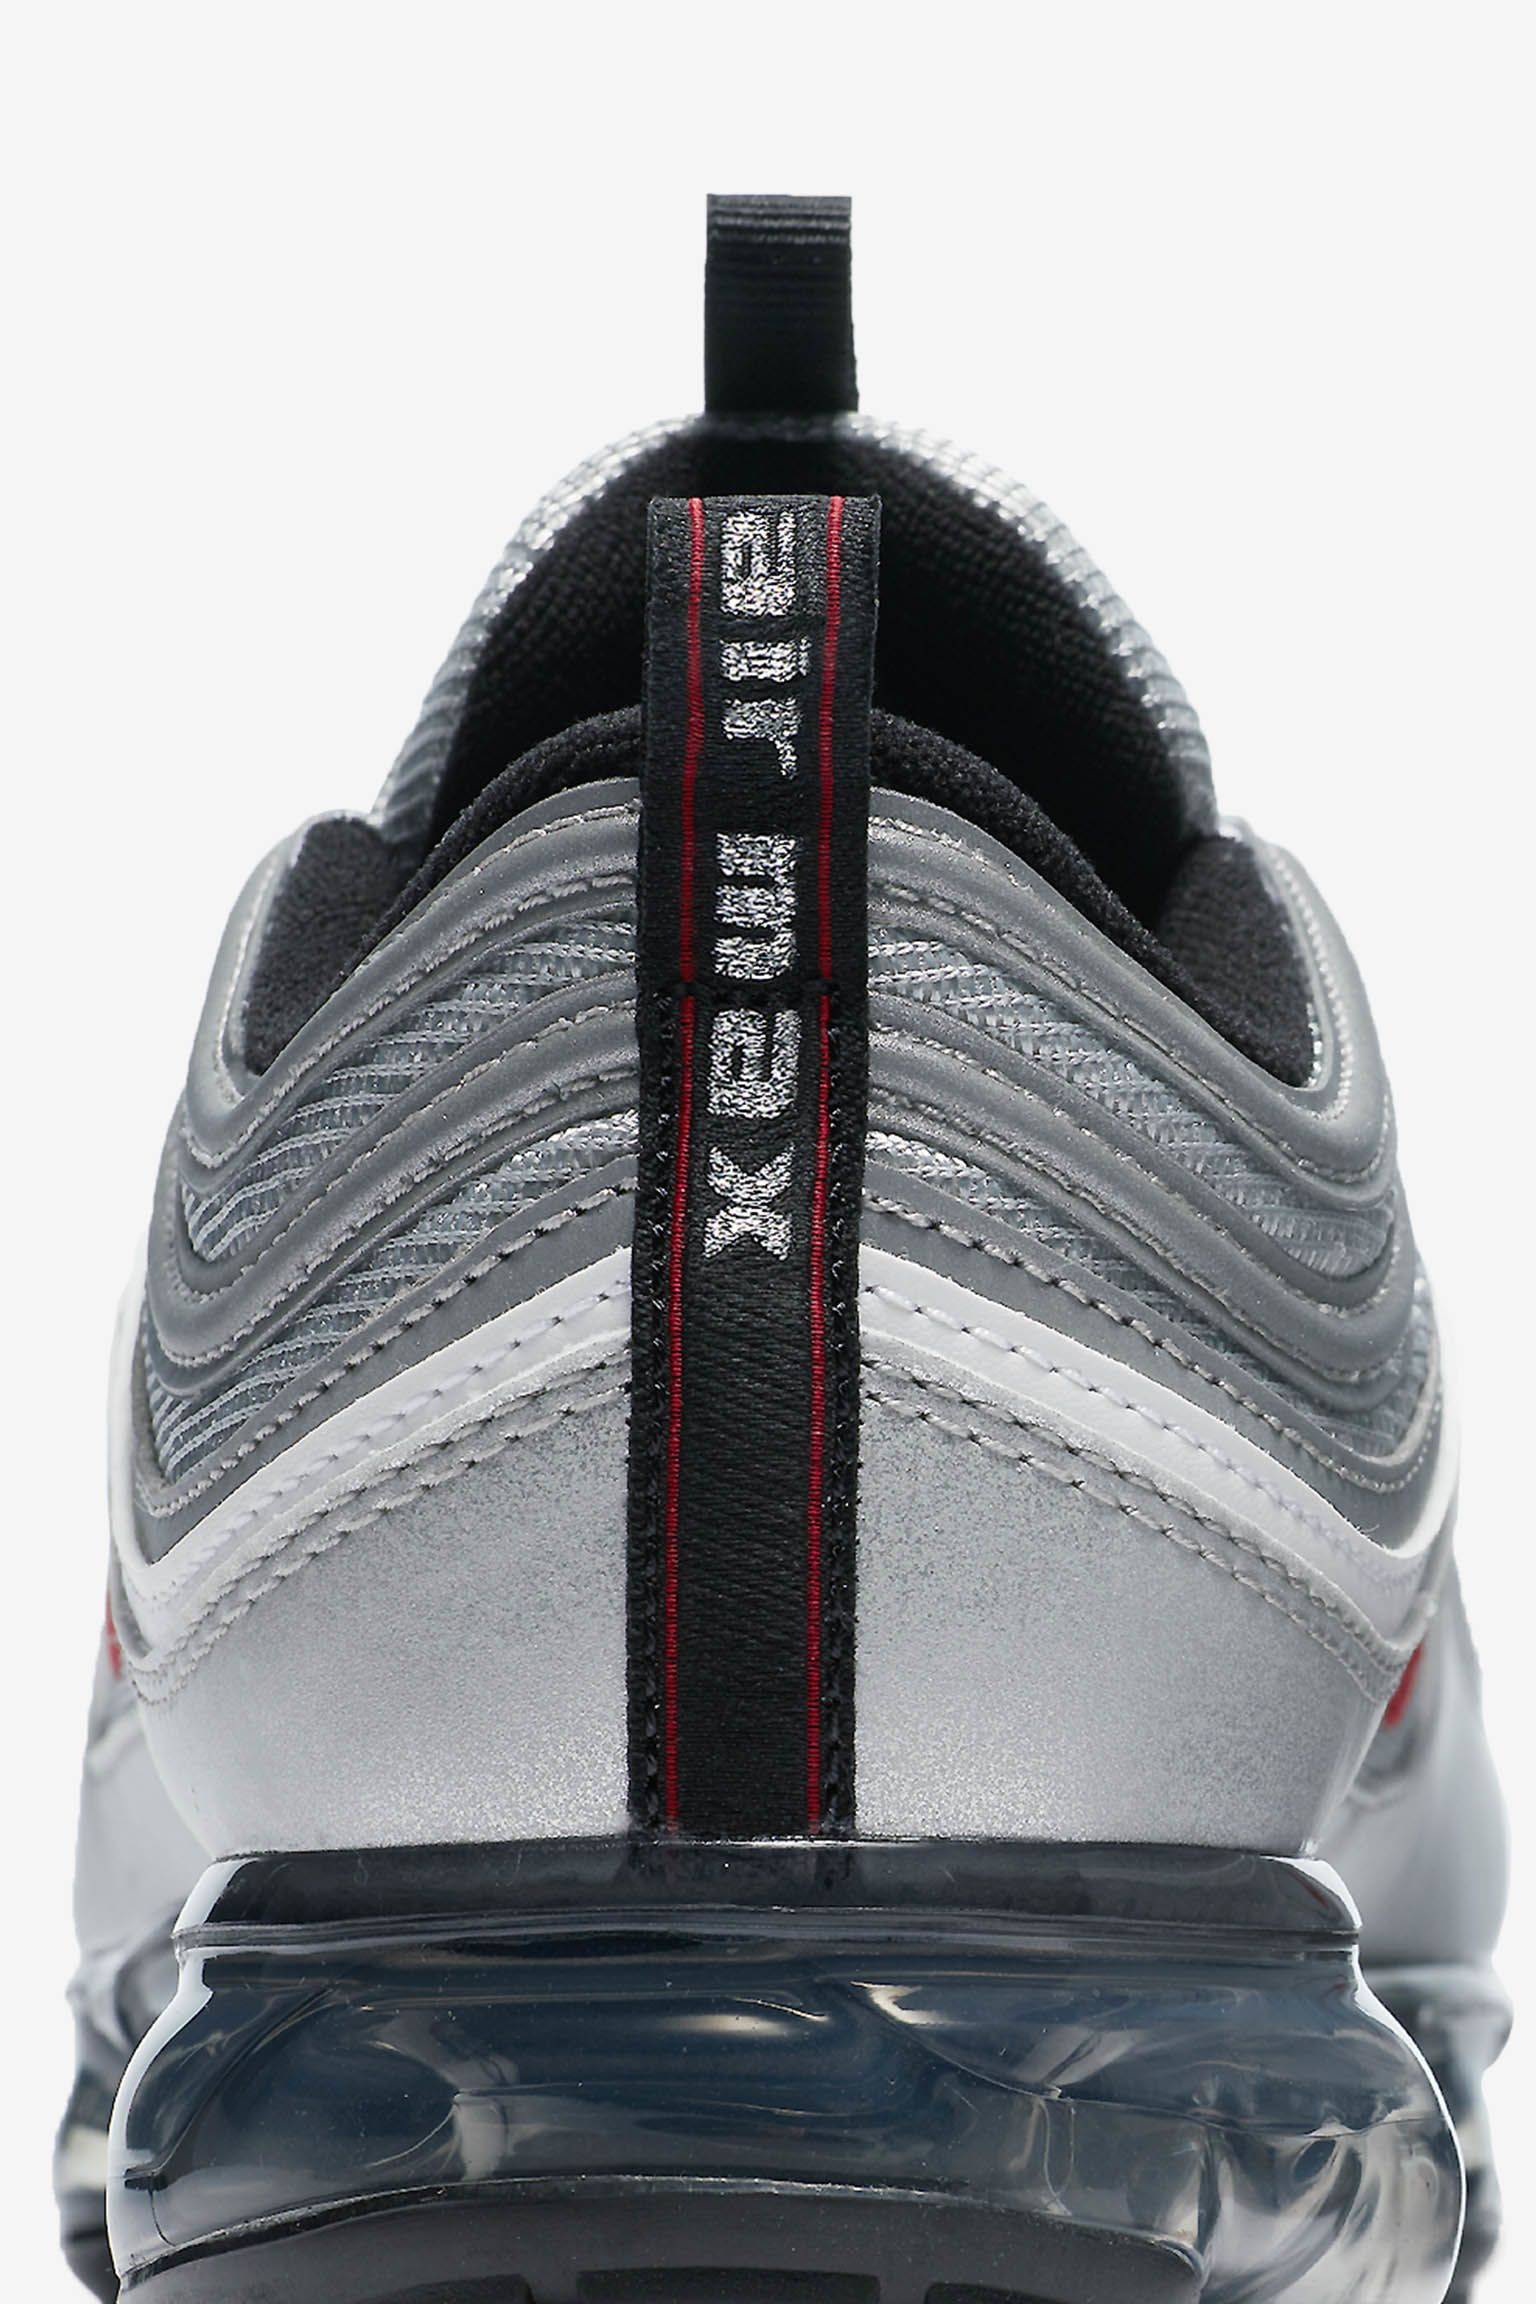 Nike Air Vapormax 97 'Metallic Silver & Varsity Red' Release Date